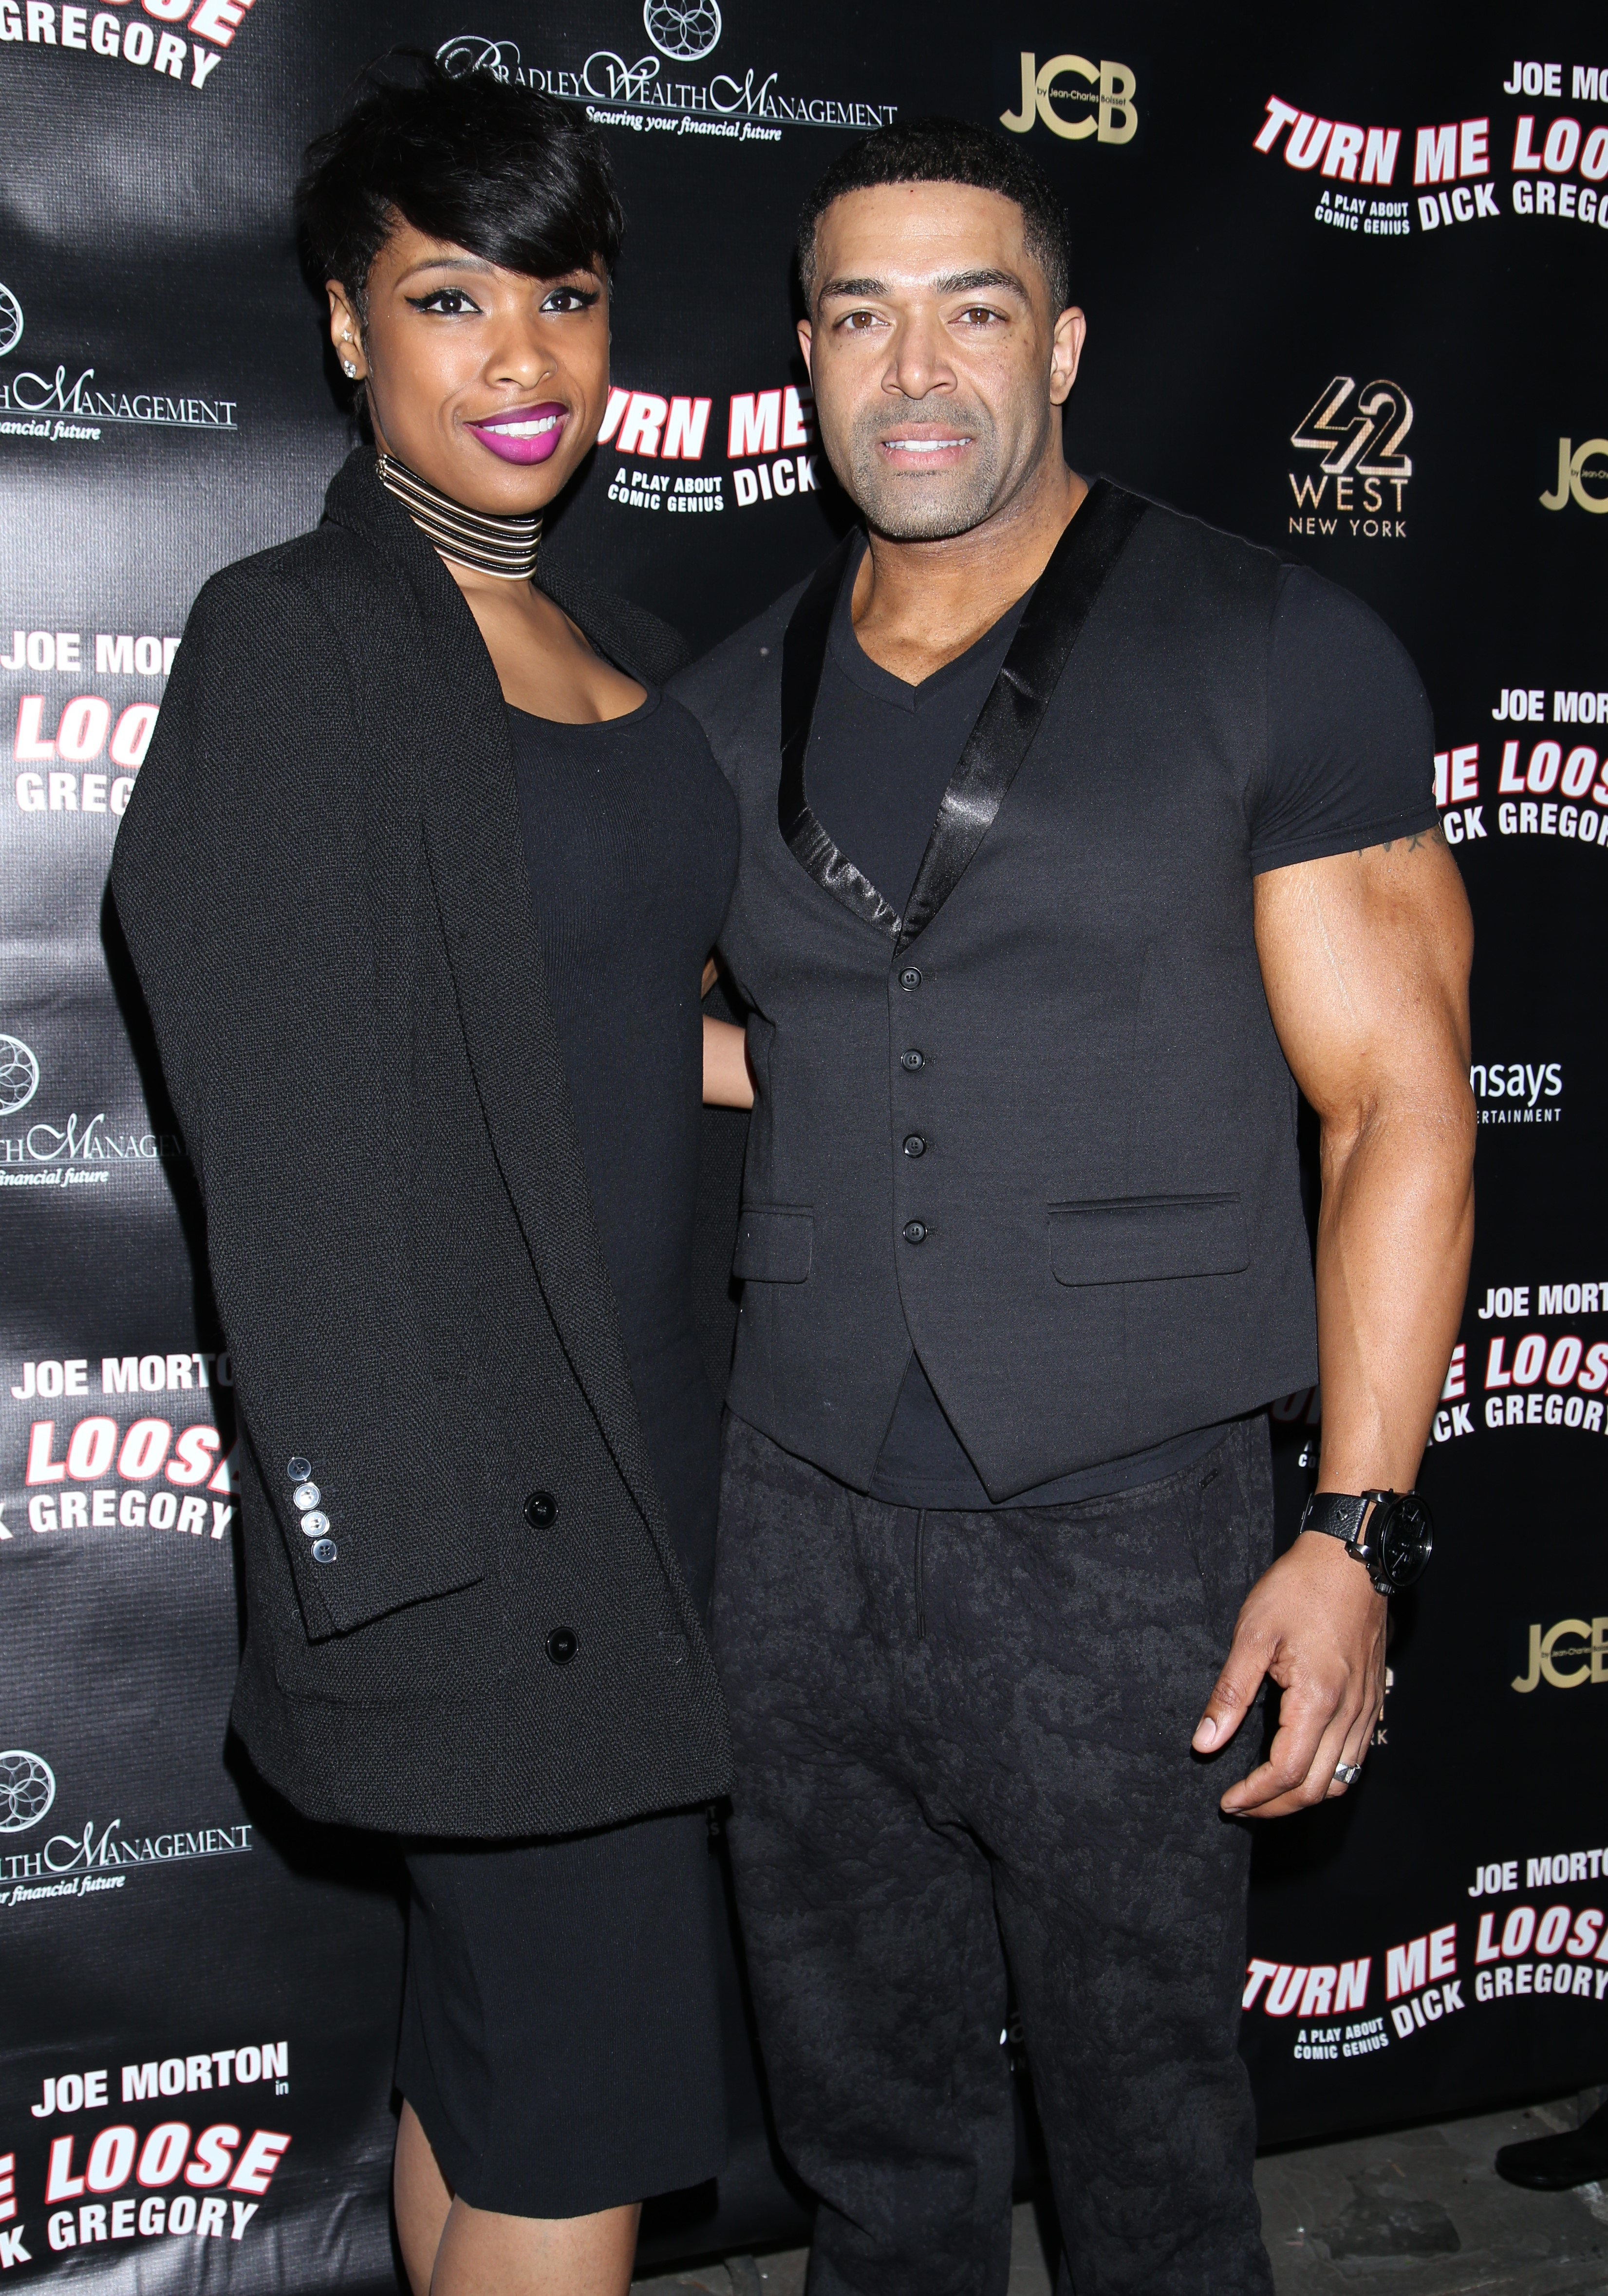 Jennifer Hudson and David Otunga attend opening night of Turn Me Loose at the West Side Theatre  in New York City on May 20, 2016.